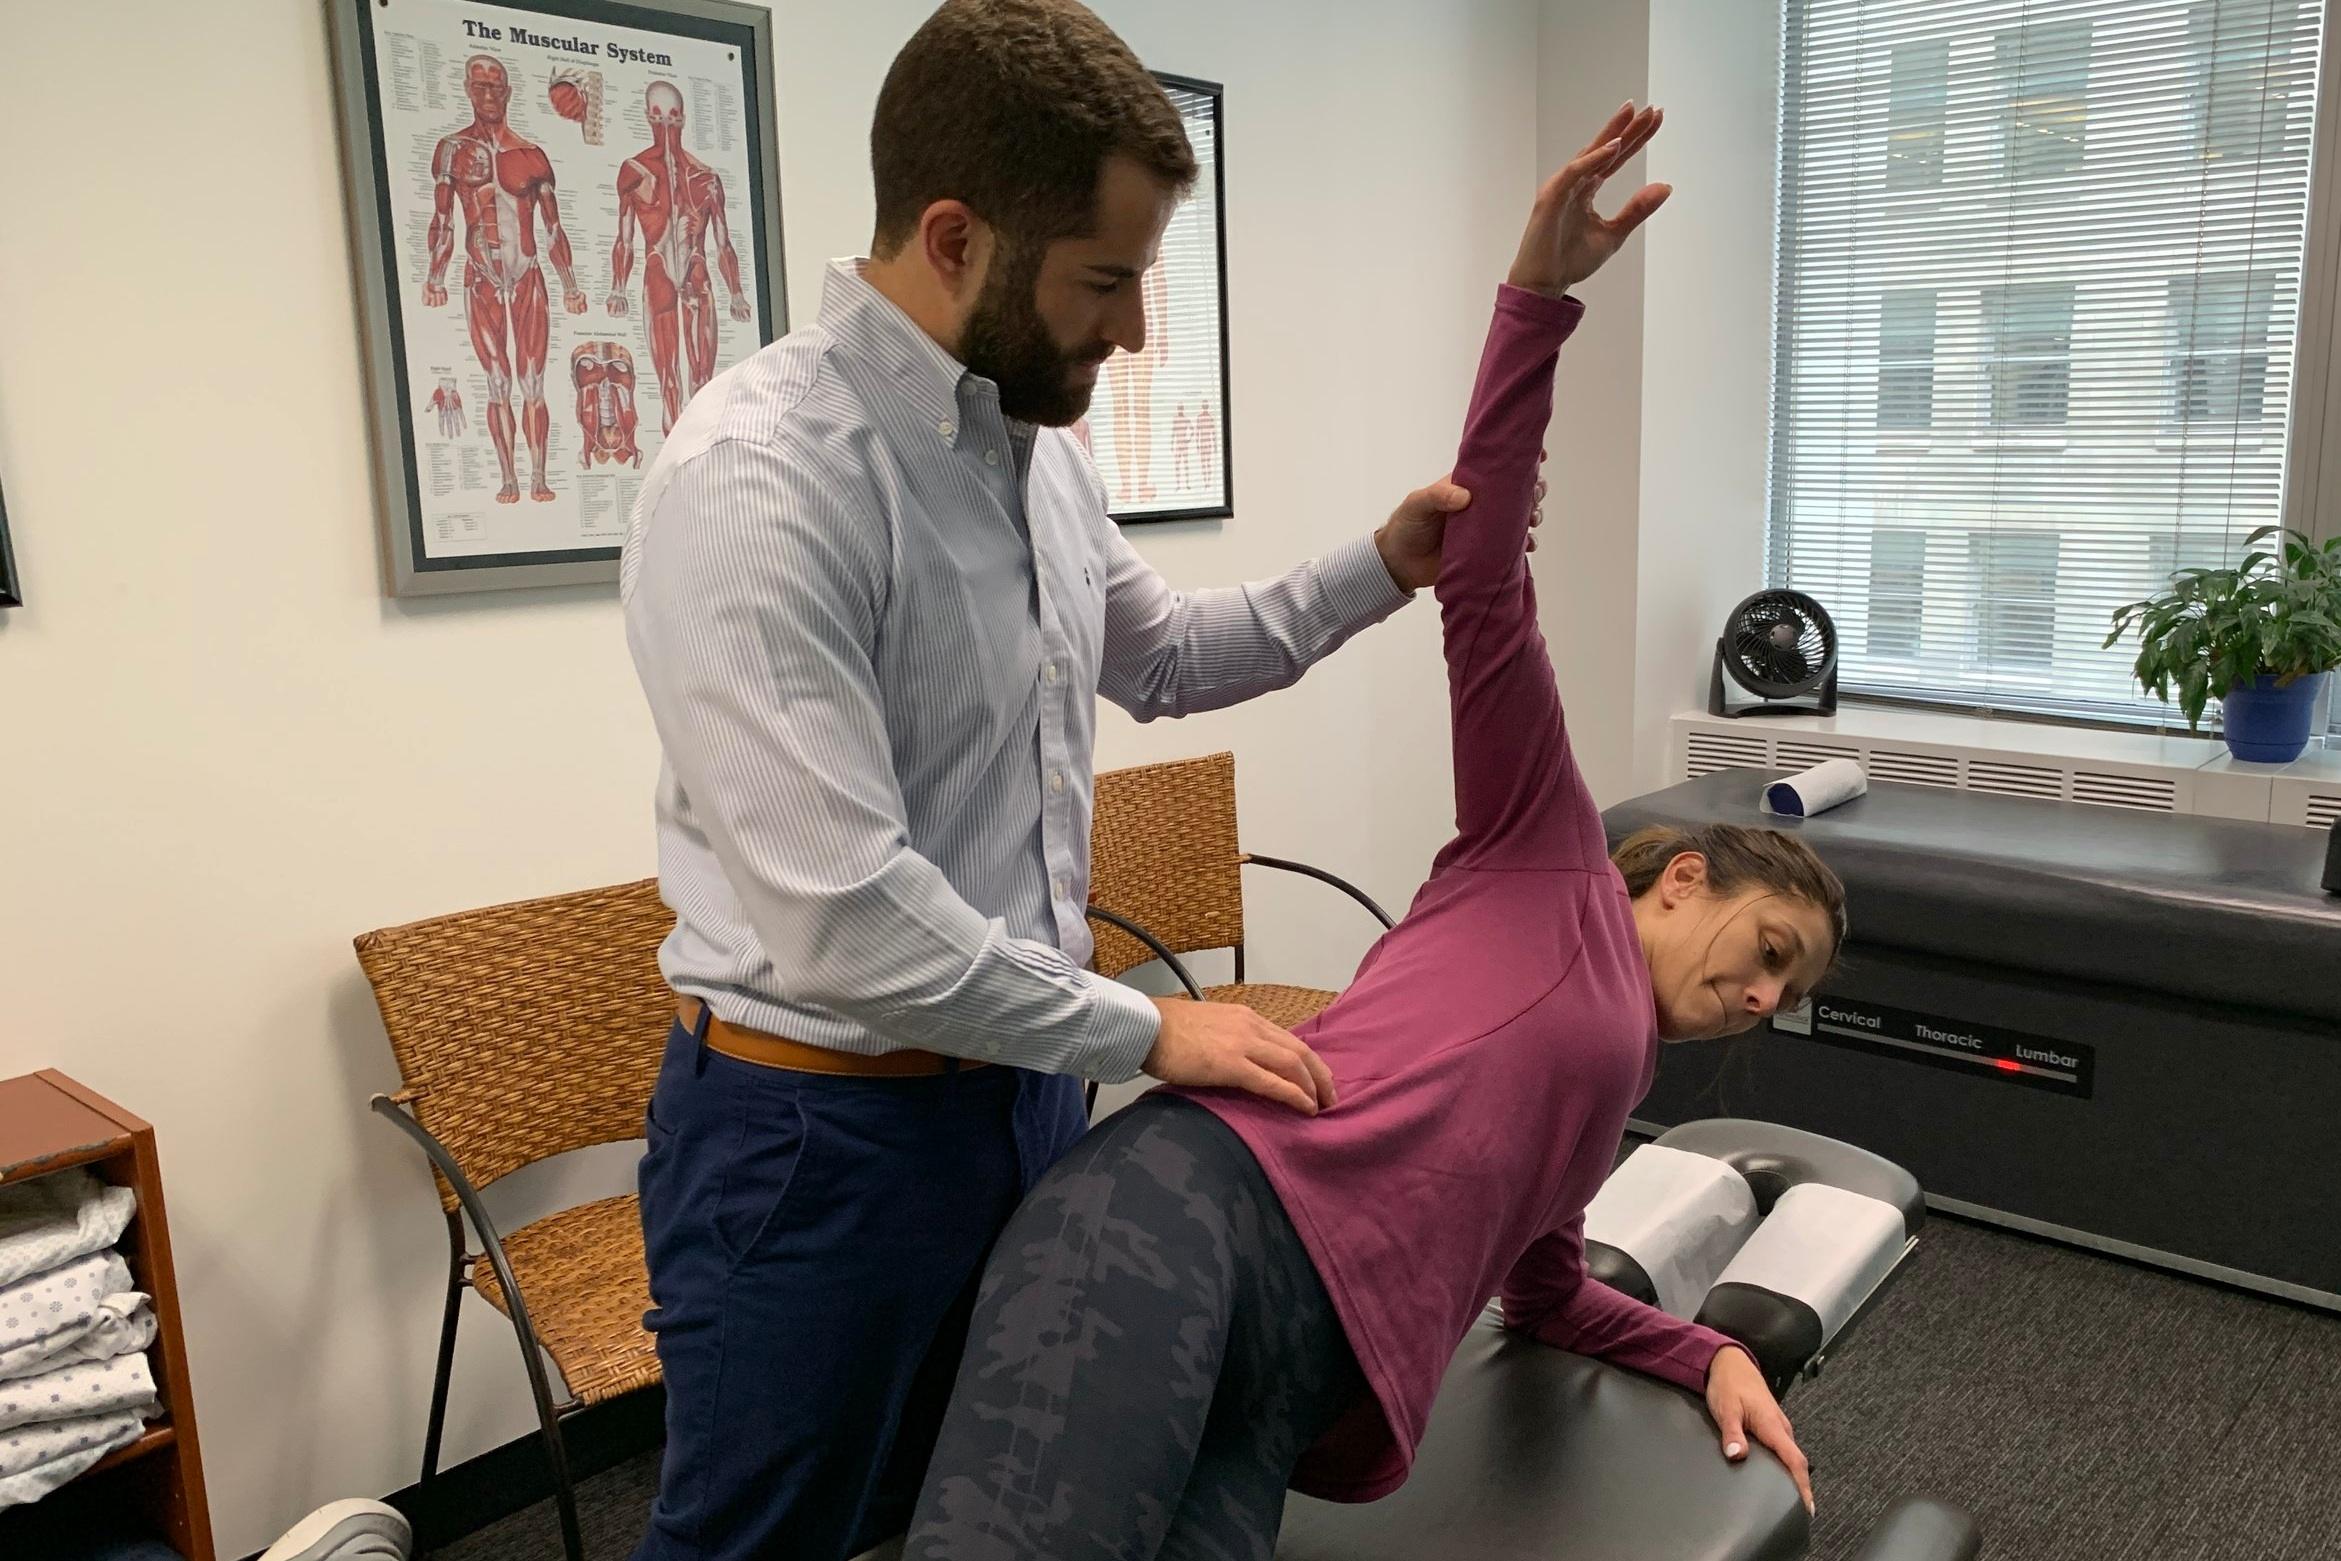 CONDITIONS - At Chicago Spine & Joint Care, we offer different chiropractic services to create tailored programs for your health needs. We offer chiropractic care, corrective exercises, lifestyle advice, nutritional counseling, massage therapy, and spinal & postural screenings.